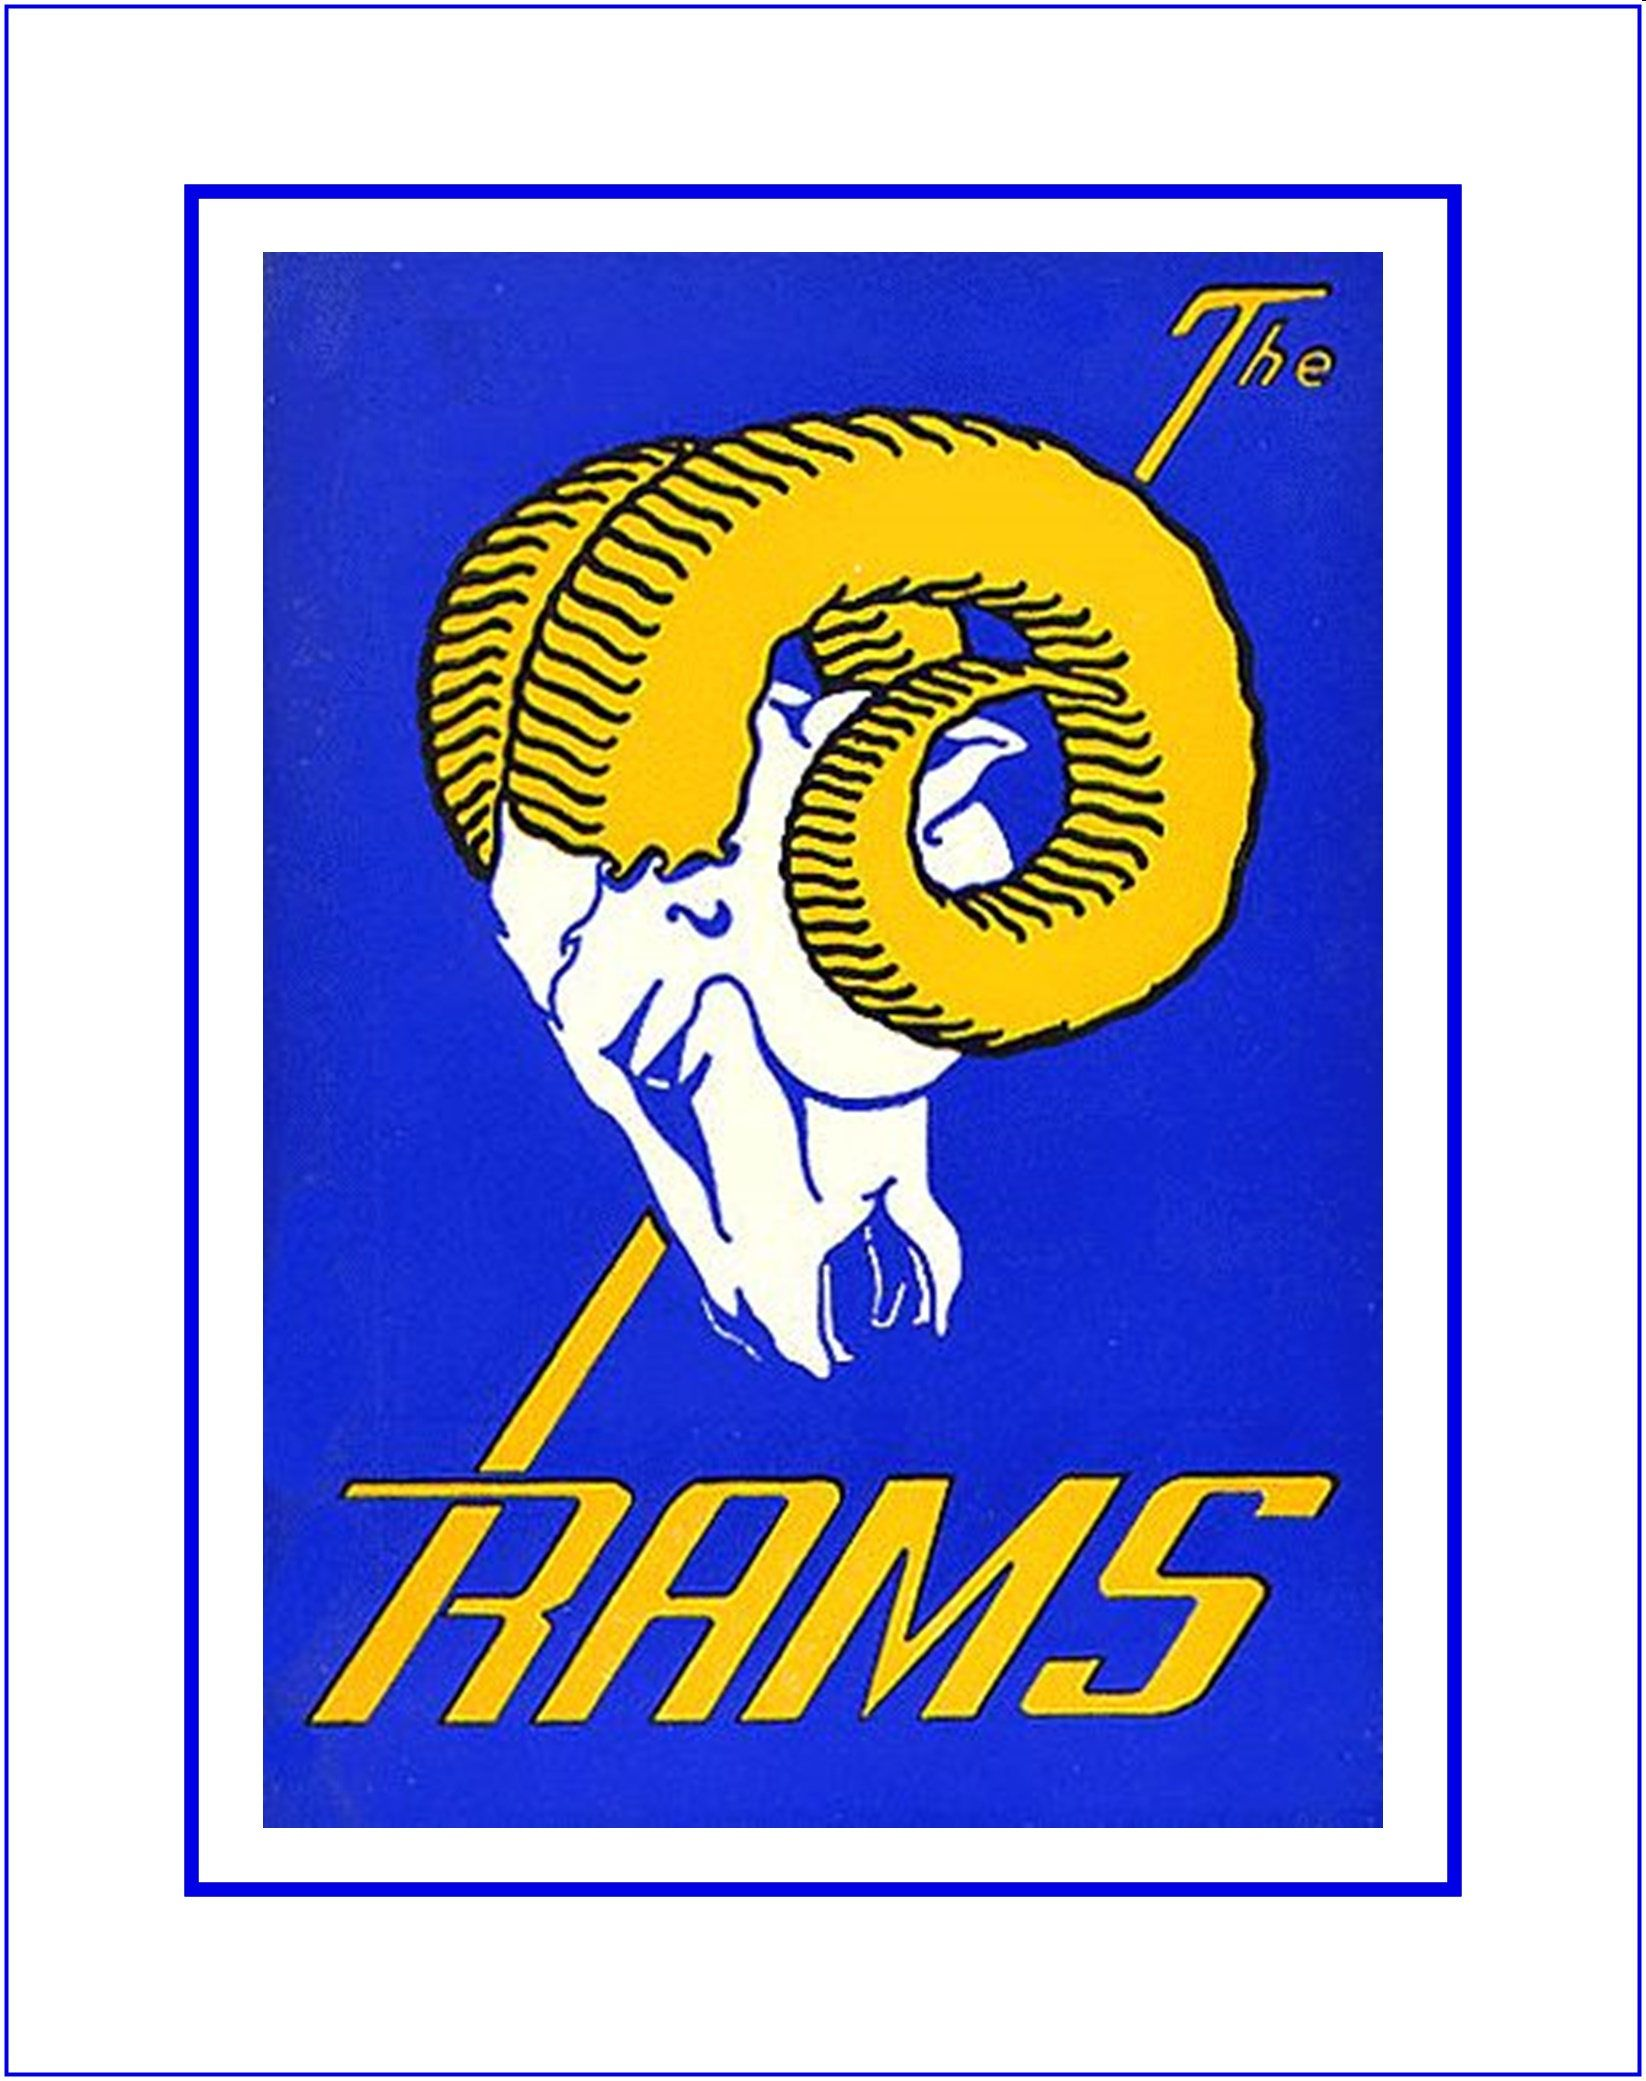 Retro la rams football logo poster fan wall art gift vintage nfl retro la rams football logo poster fan wall art gift vintage nfl sports bar amipublicfo Image collections